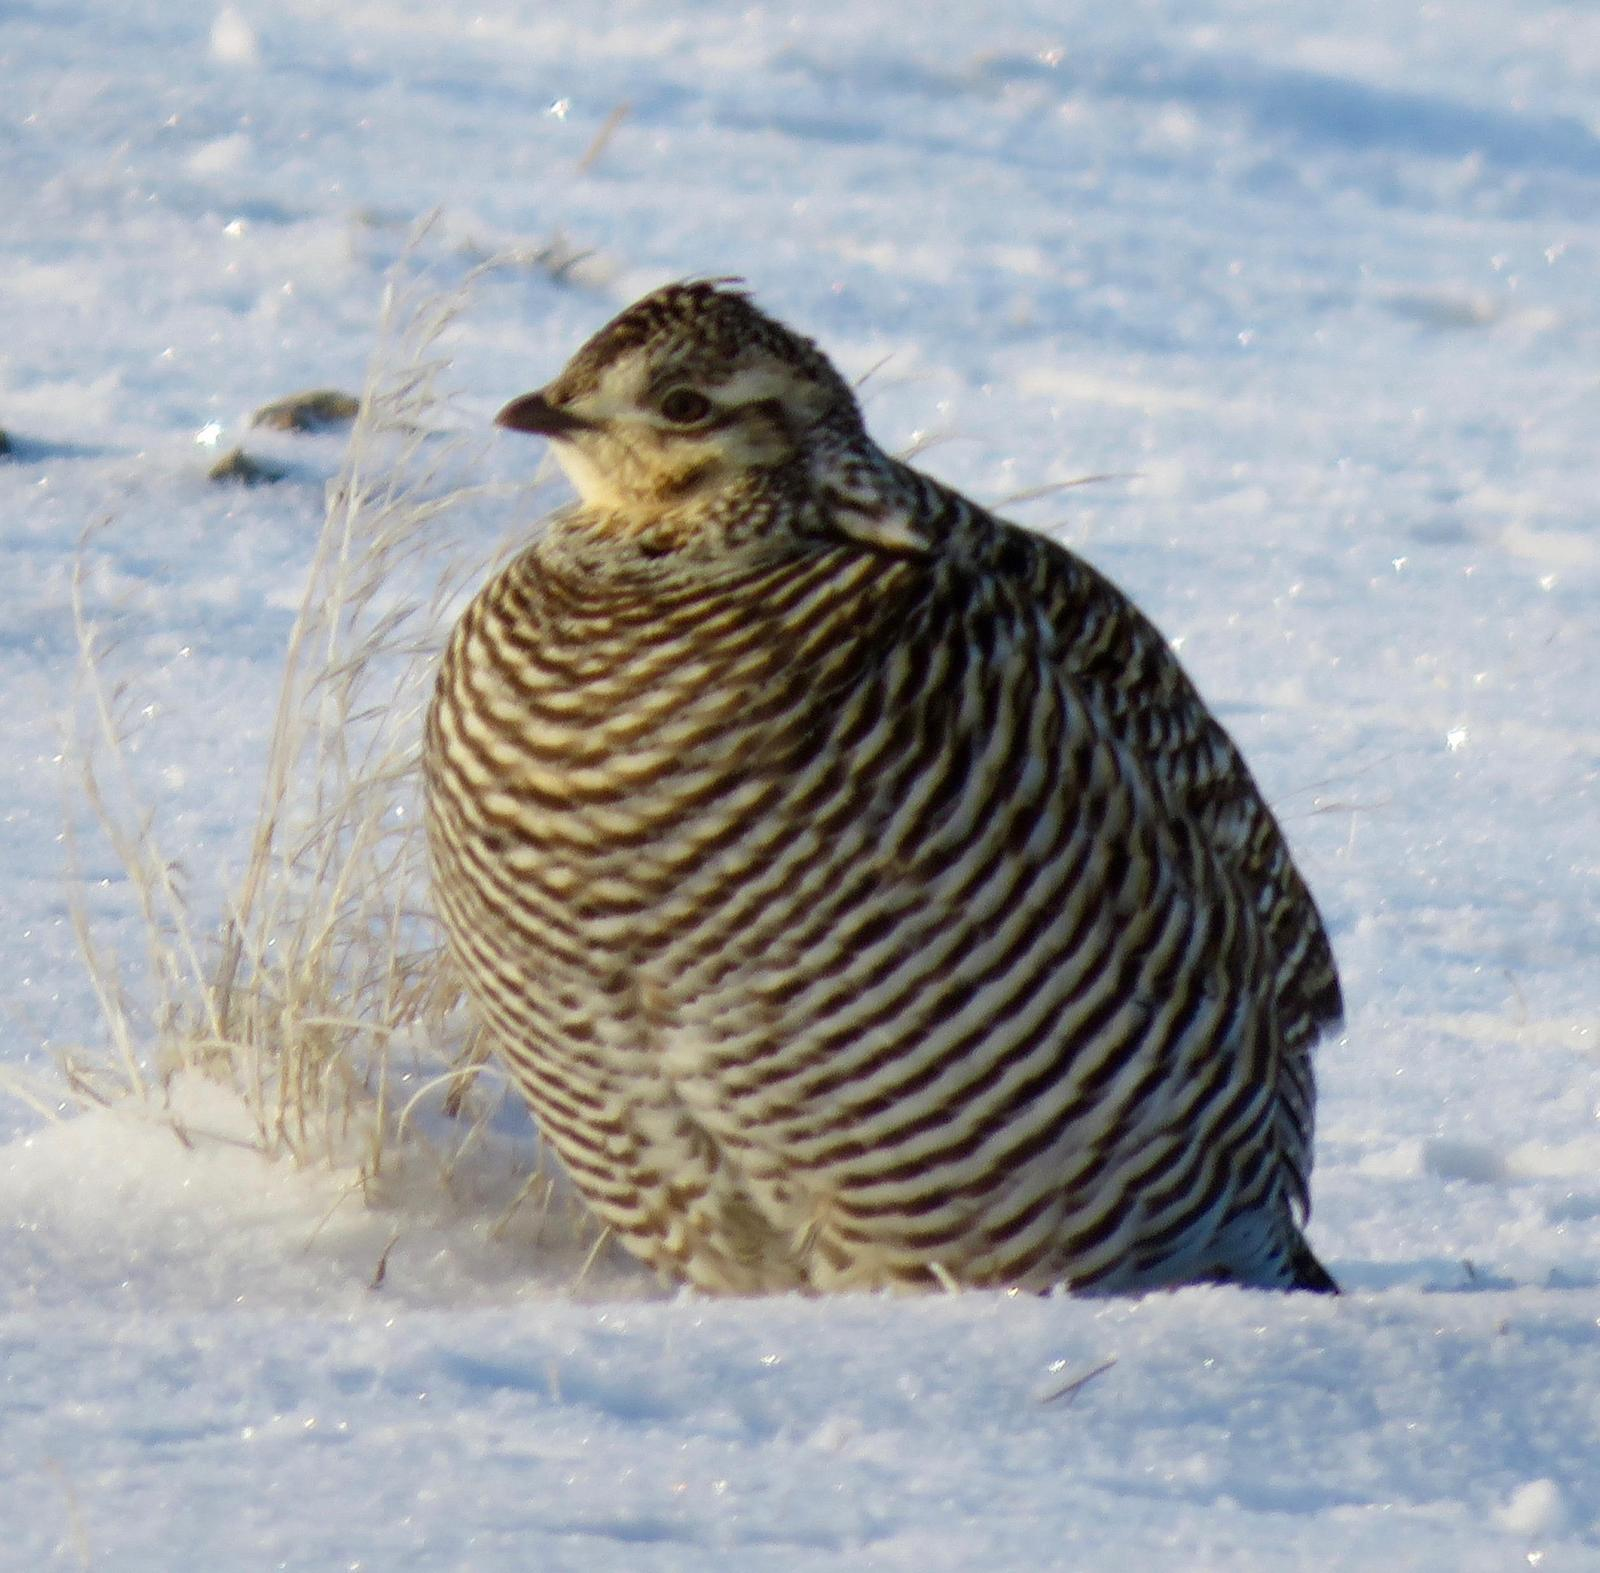 Greater Prairie-Chicken Photo by Don Glasco